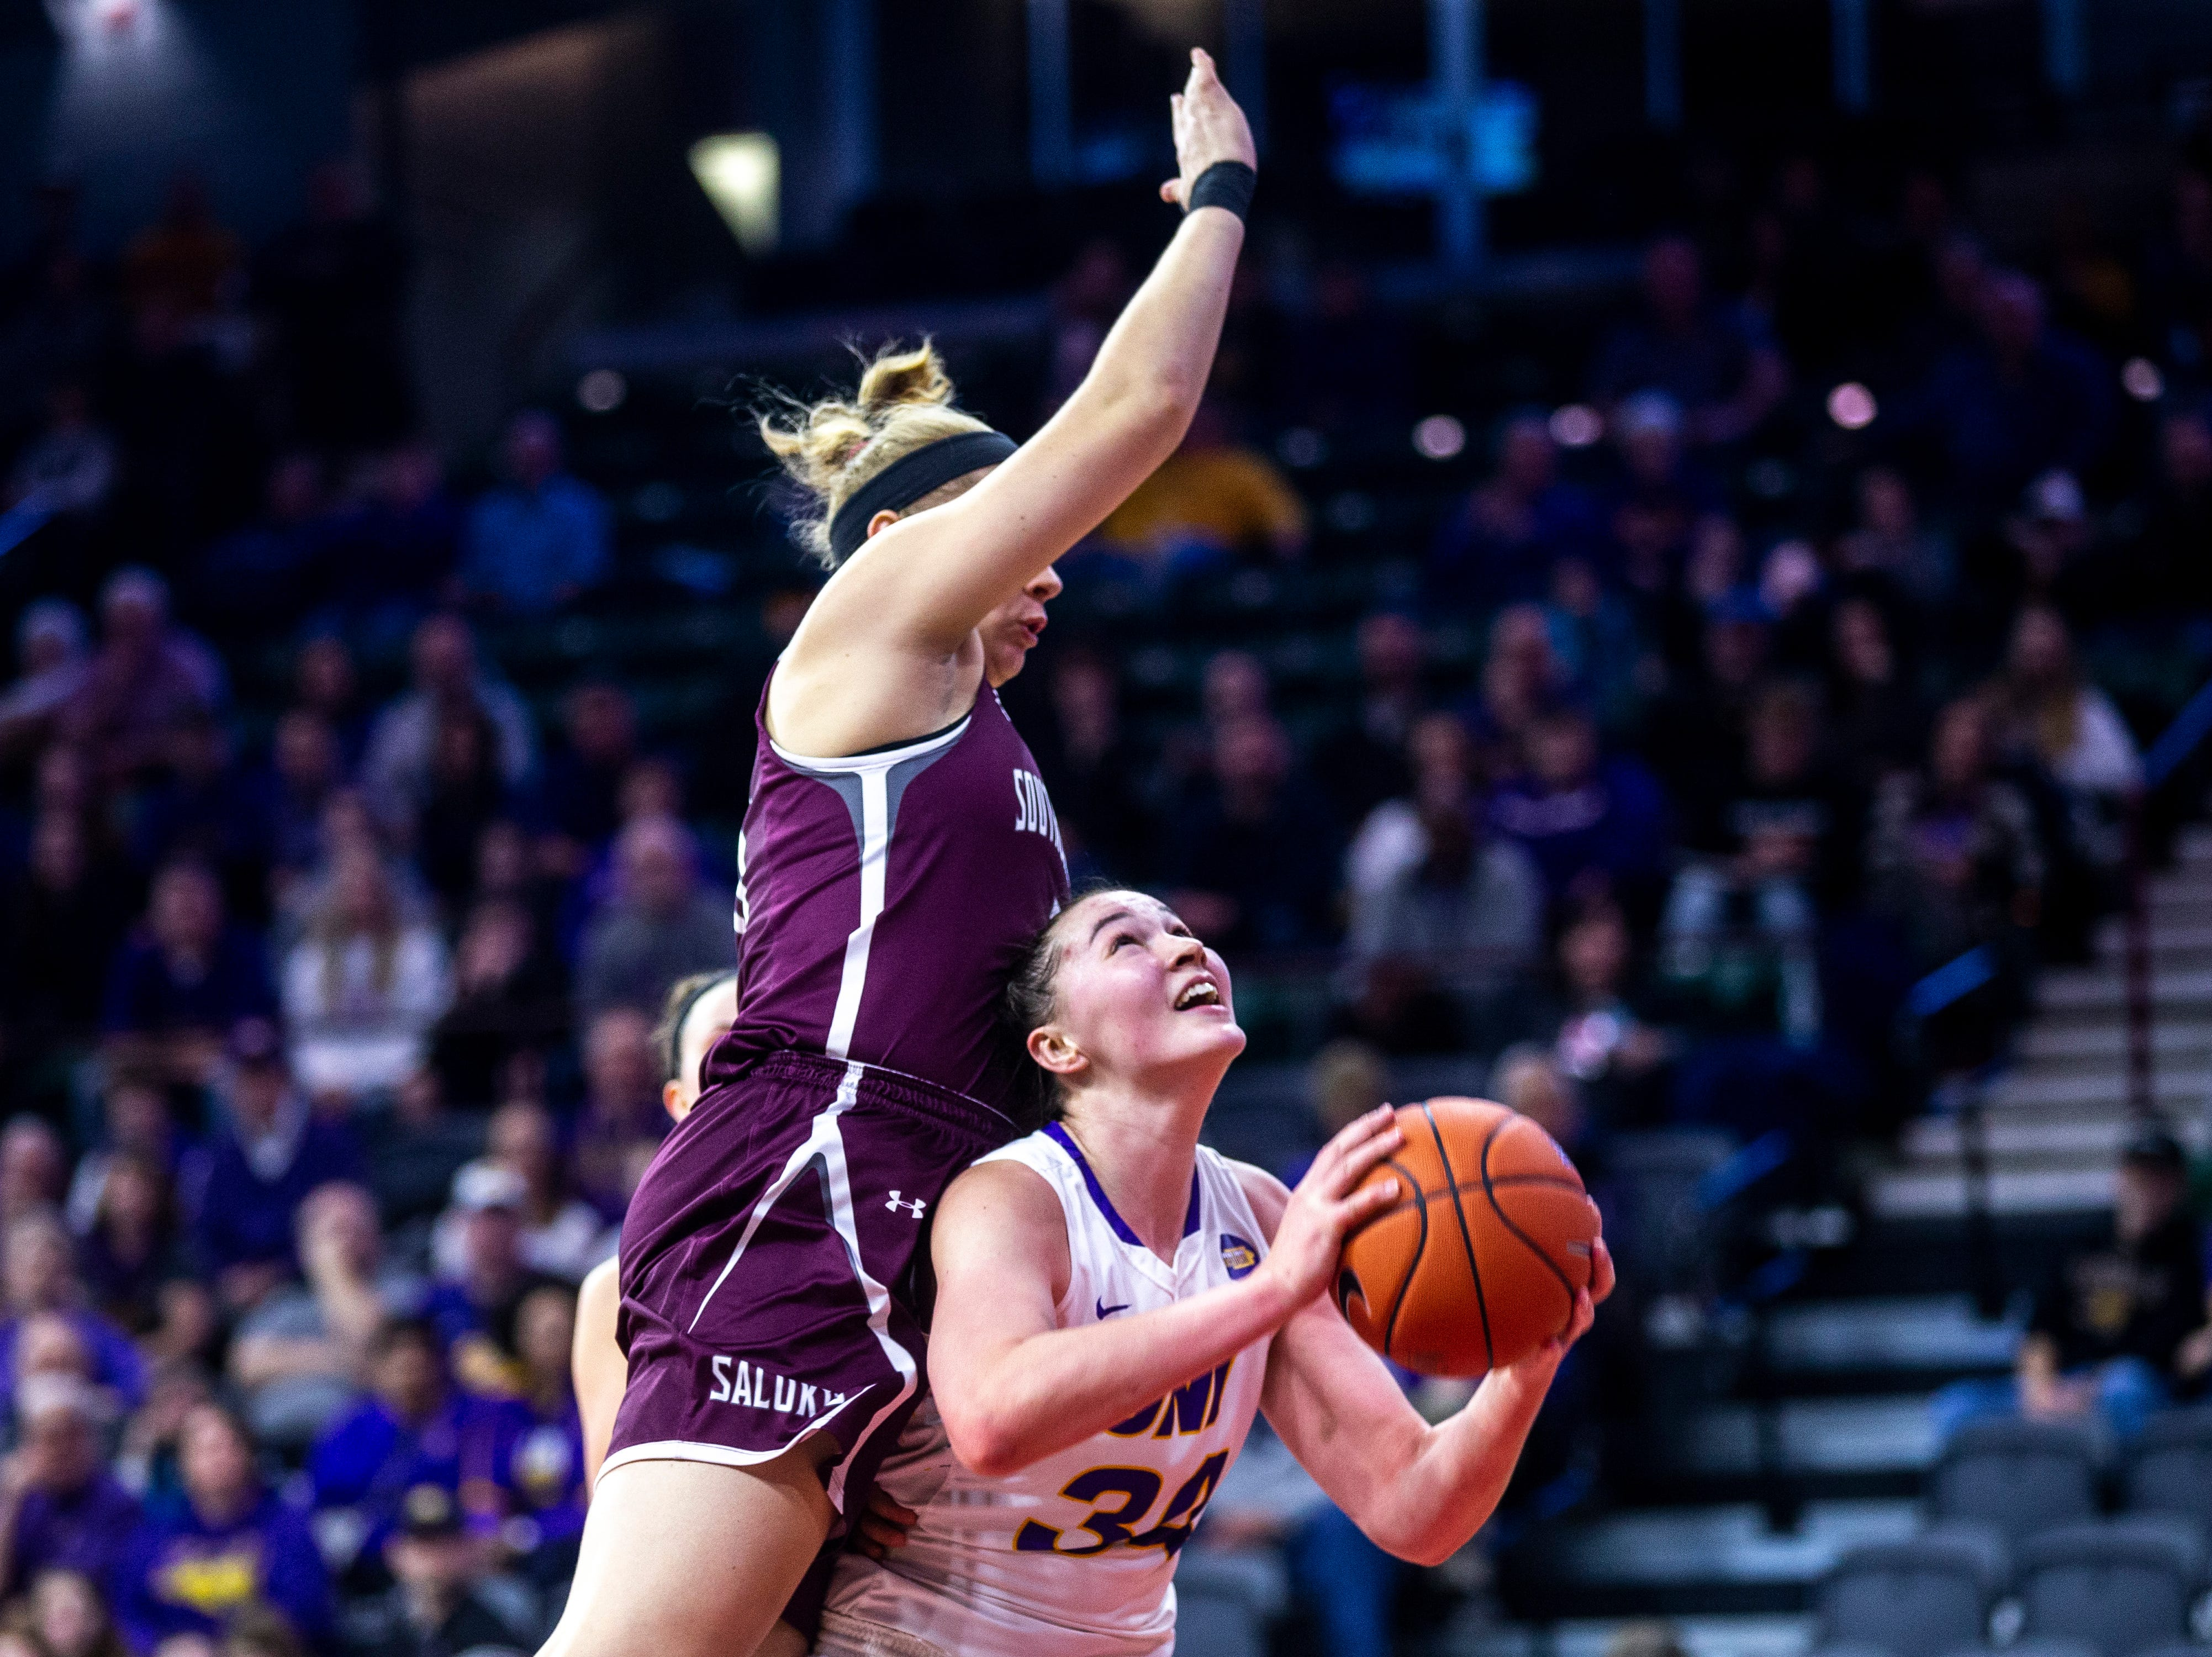 Northern Iowa forward Taylor Hagen (34) gets fouled by Southern Illinois forward Abby Brockmeyer during a NCAA Missouri Valley Conference women's basketball quarterfinal tournament game, Friday, March 15, 2019, at the TaxSlayer Center in Moline, Illinois.